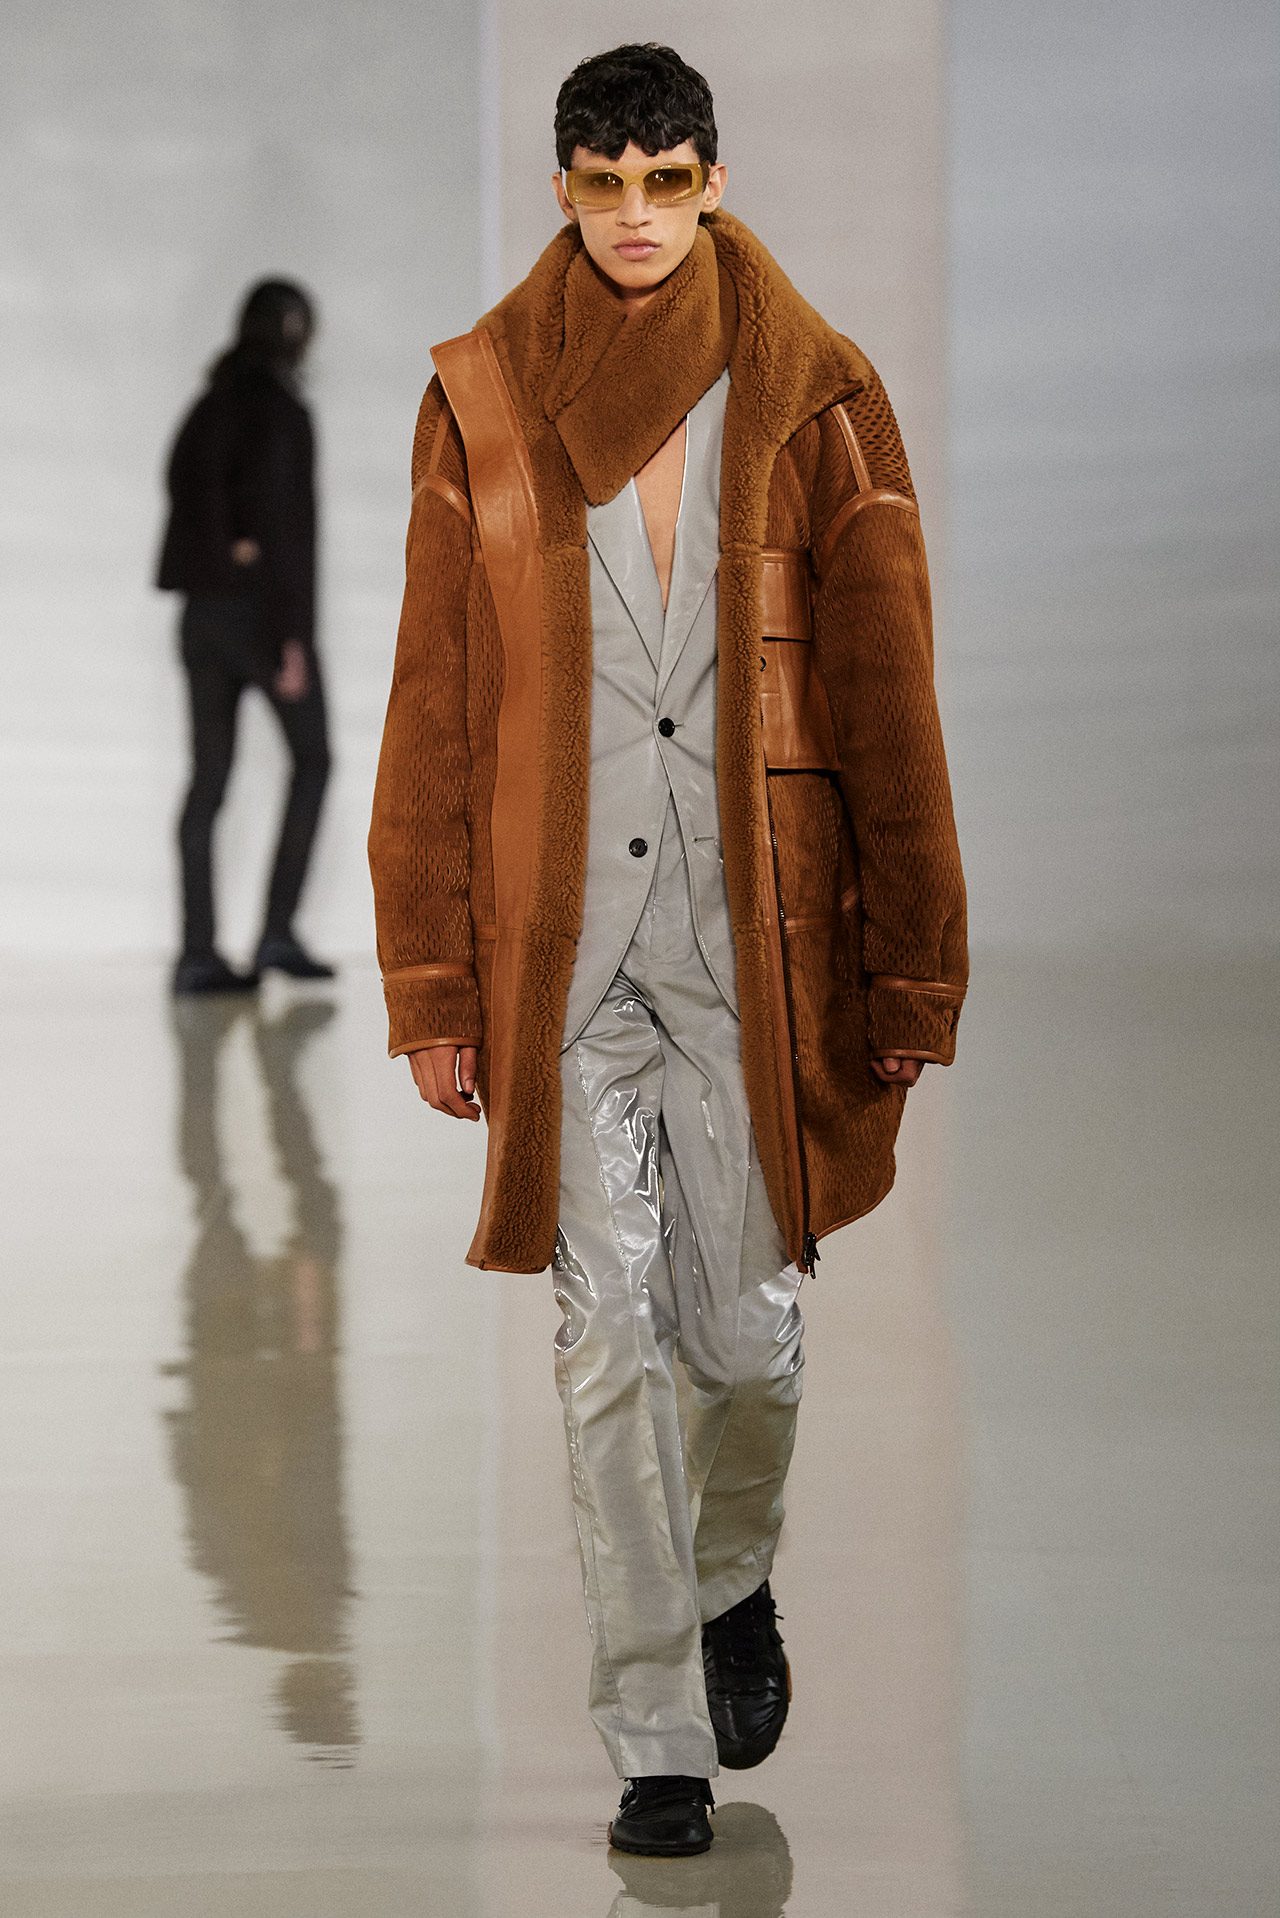 Look Fall/Winter 2020, image 27